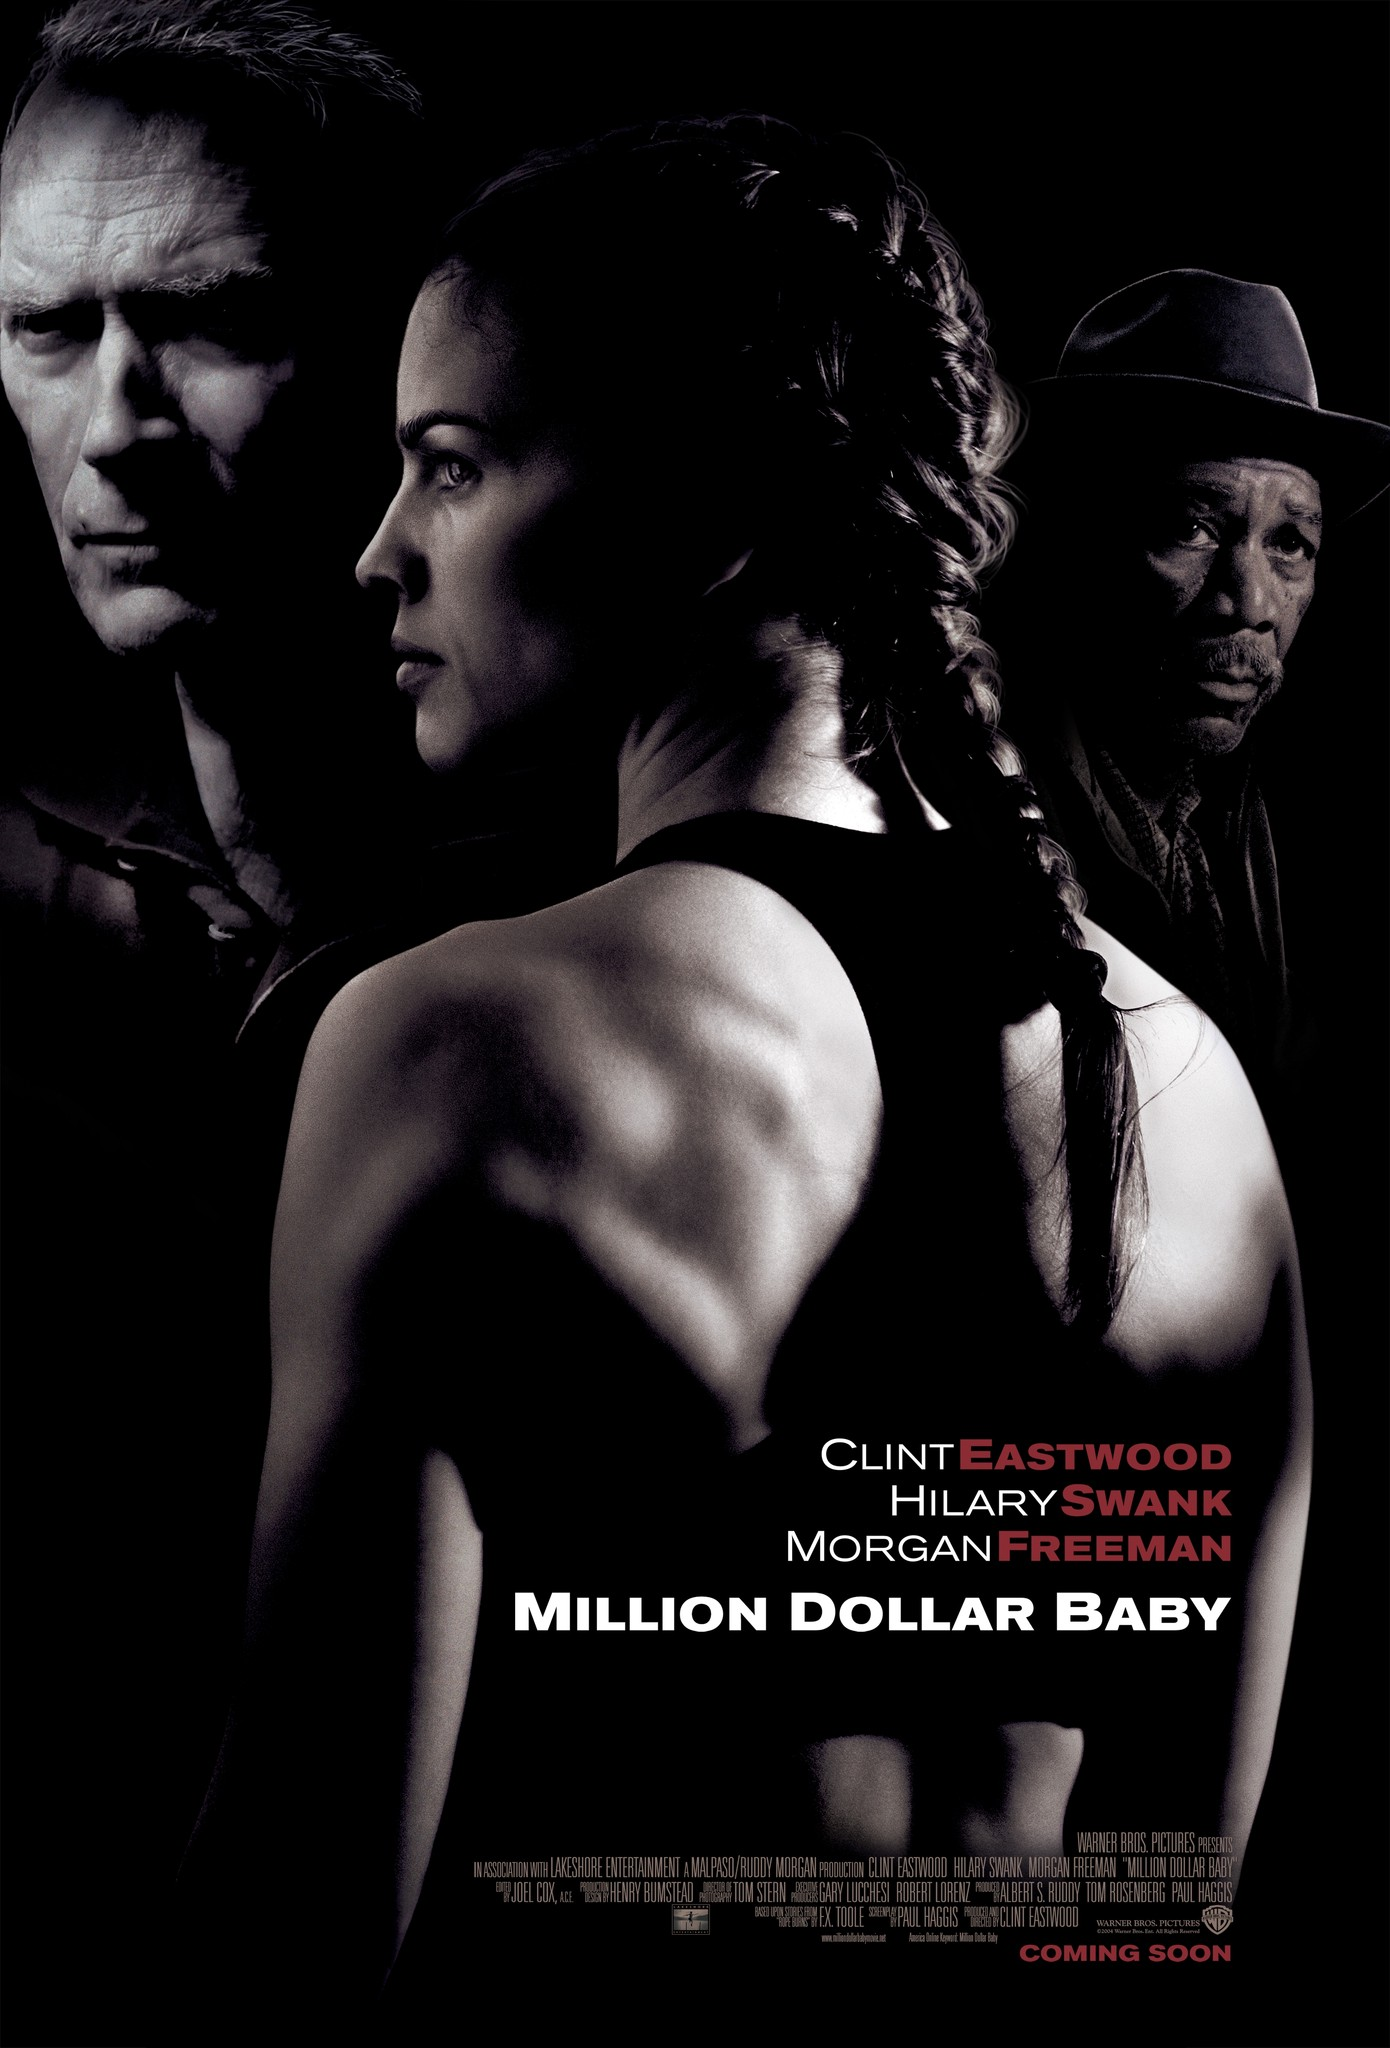 Poster for the film Million Dollar Baby